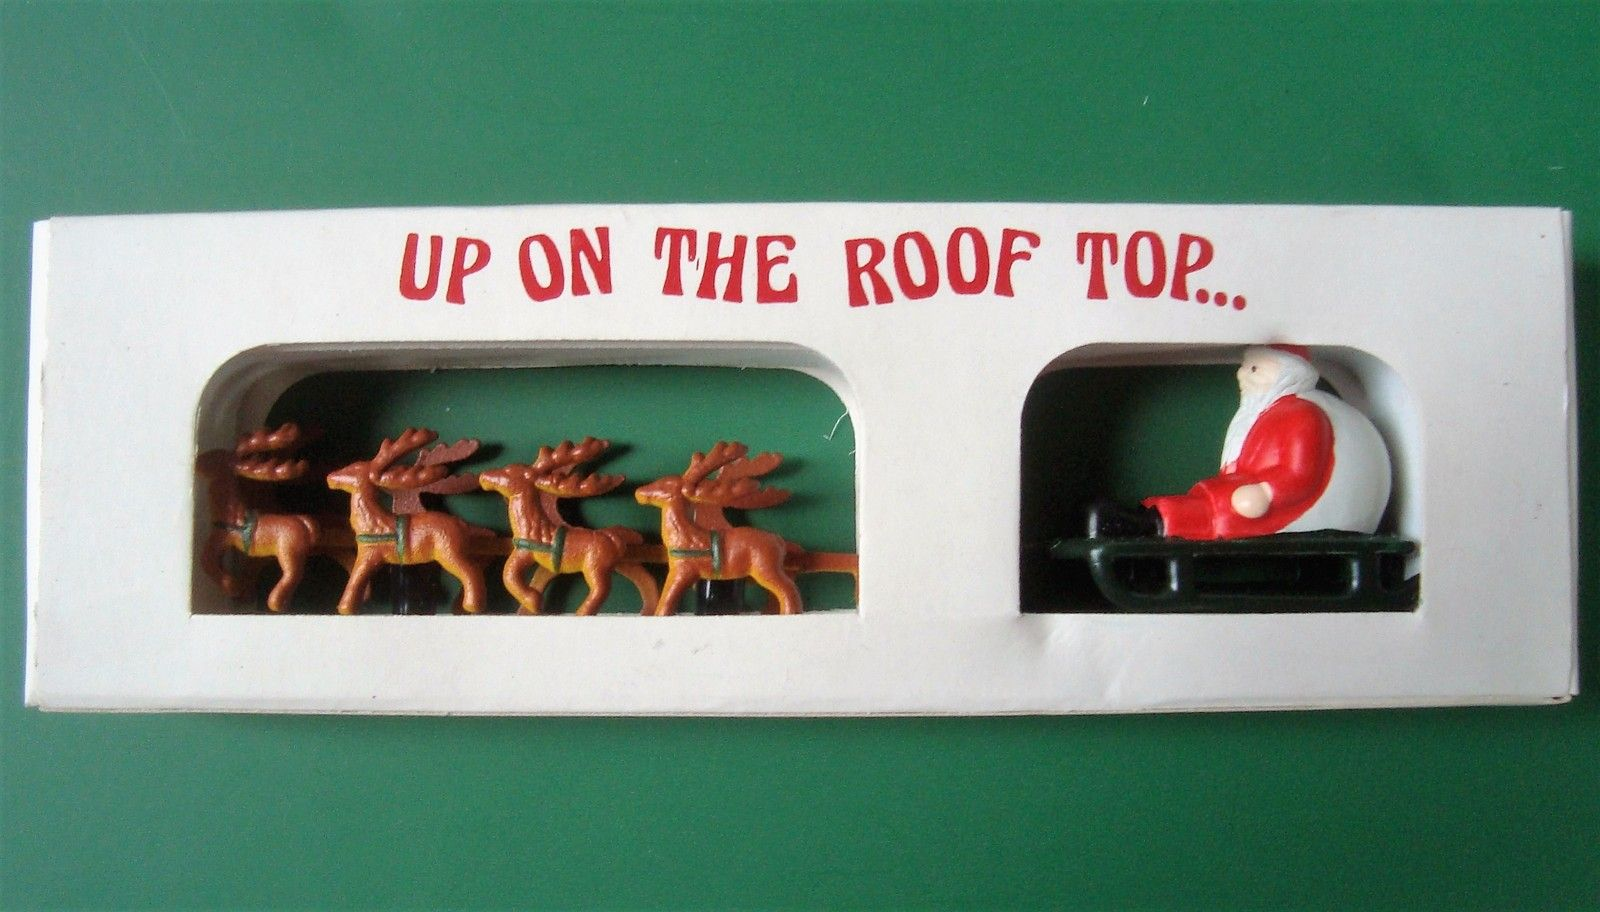 Department 56 Up On The Roof Top Santa With Sleigh And Reindeer 5139 0 With Box Reindeer Department 56 Christmas Settings